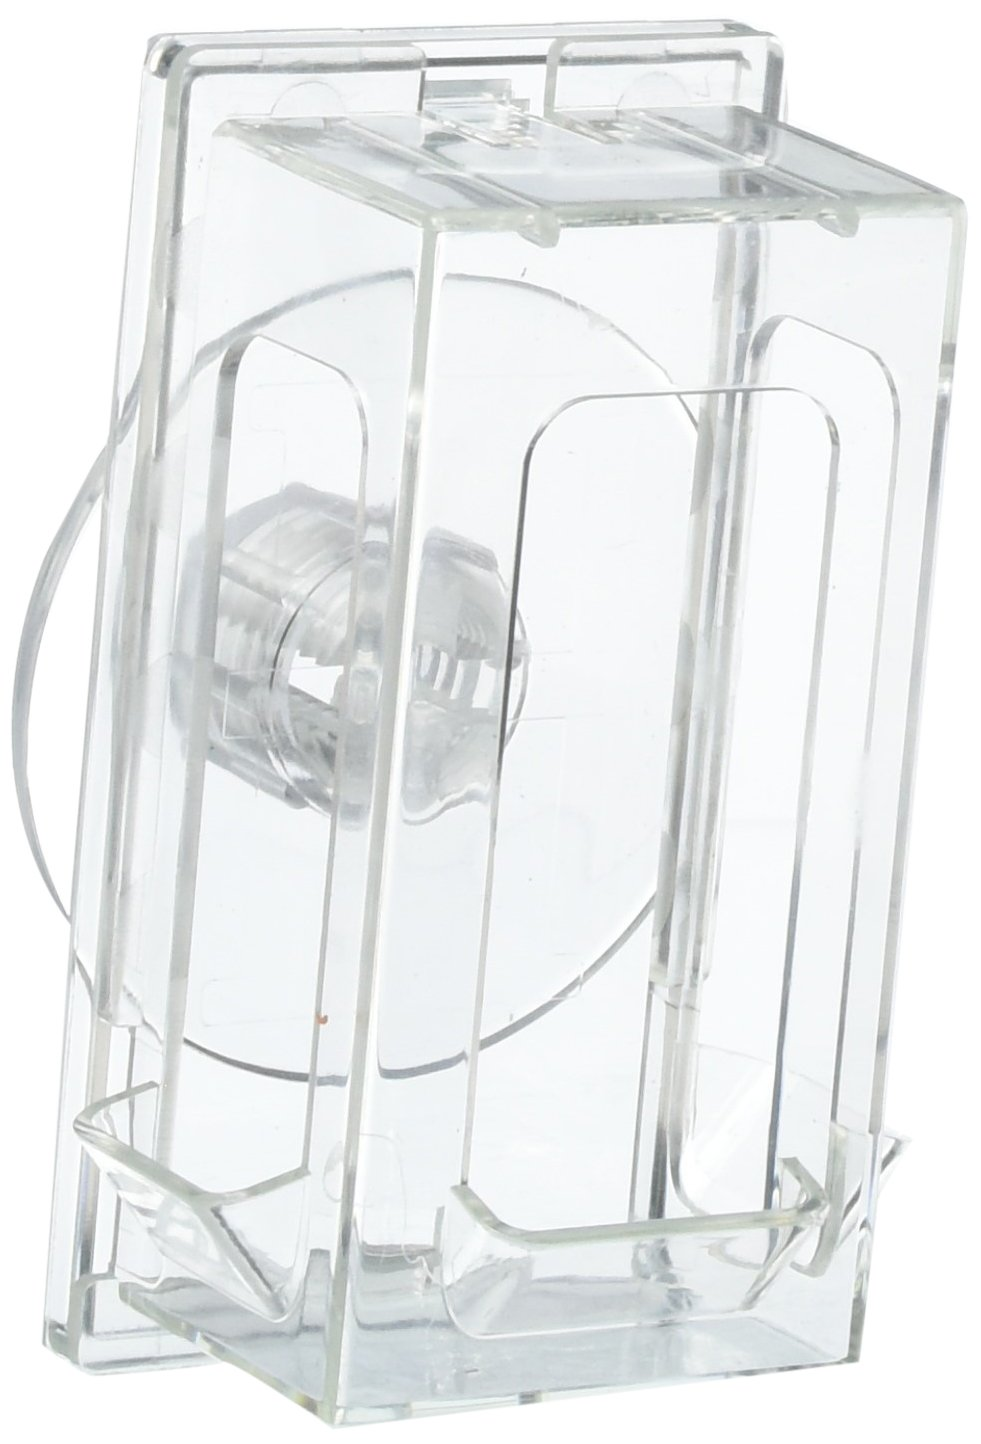 Creative Foraging Systems+E487 CFS Vertical Holder Pet Feeder, Small